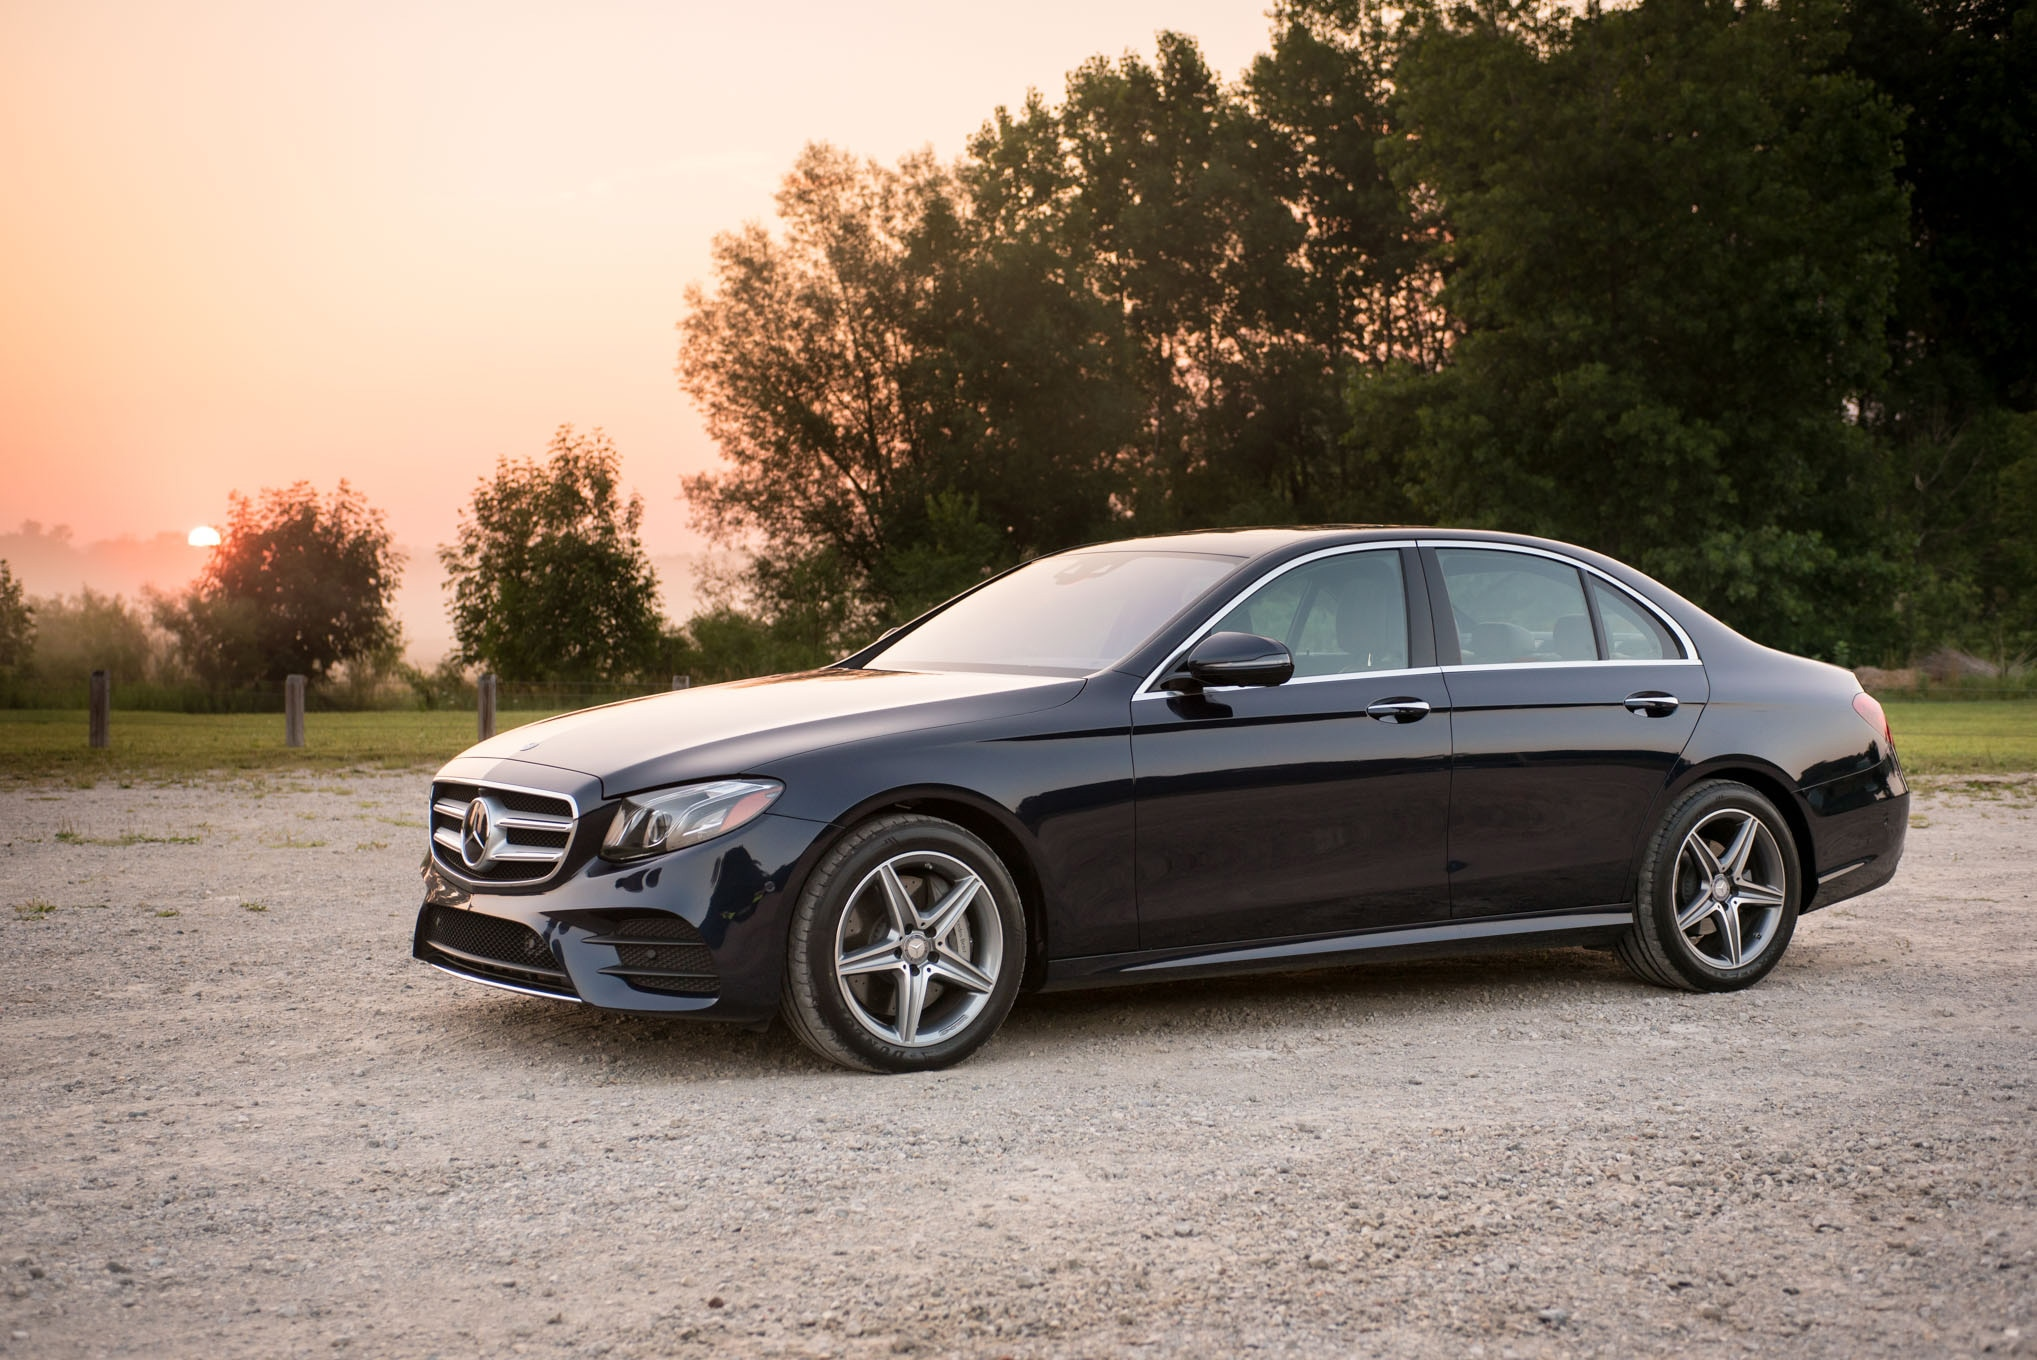 2017 Mercedes Benz E300 4MATIC Front Three Quarter 04